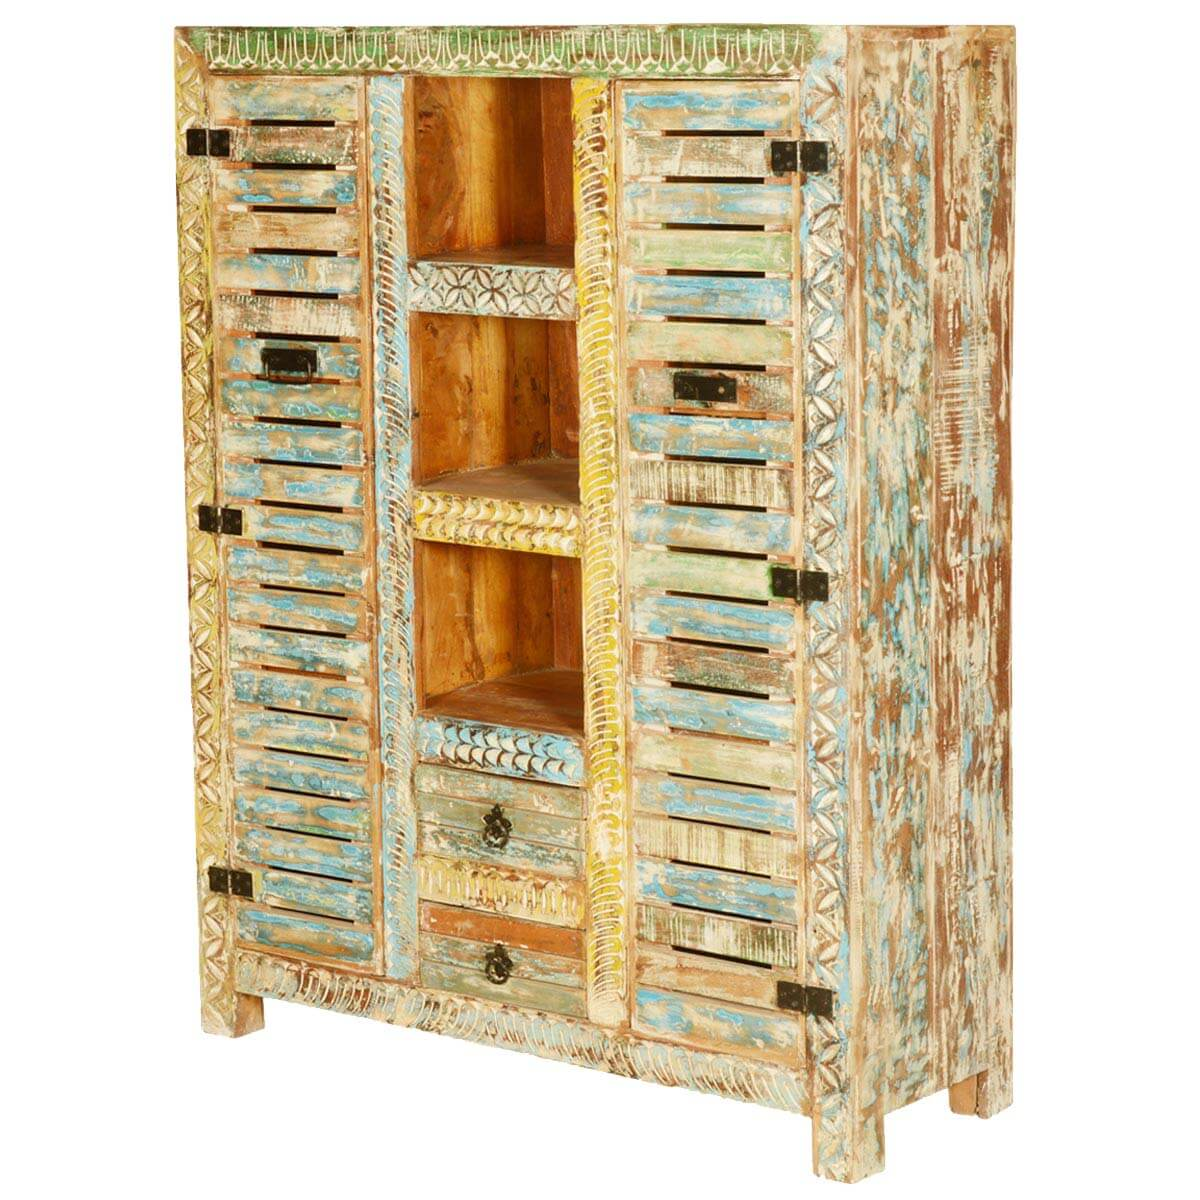 Locker doors reclaimed wood hand carved wall unit cabinet